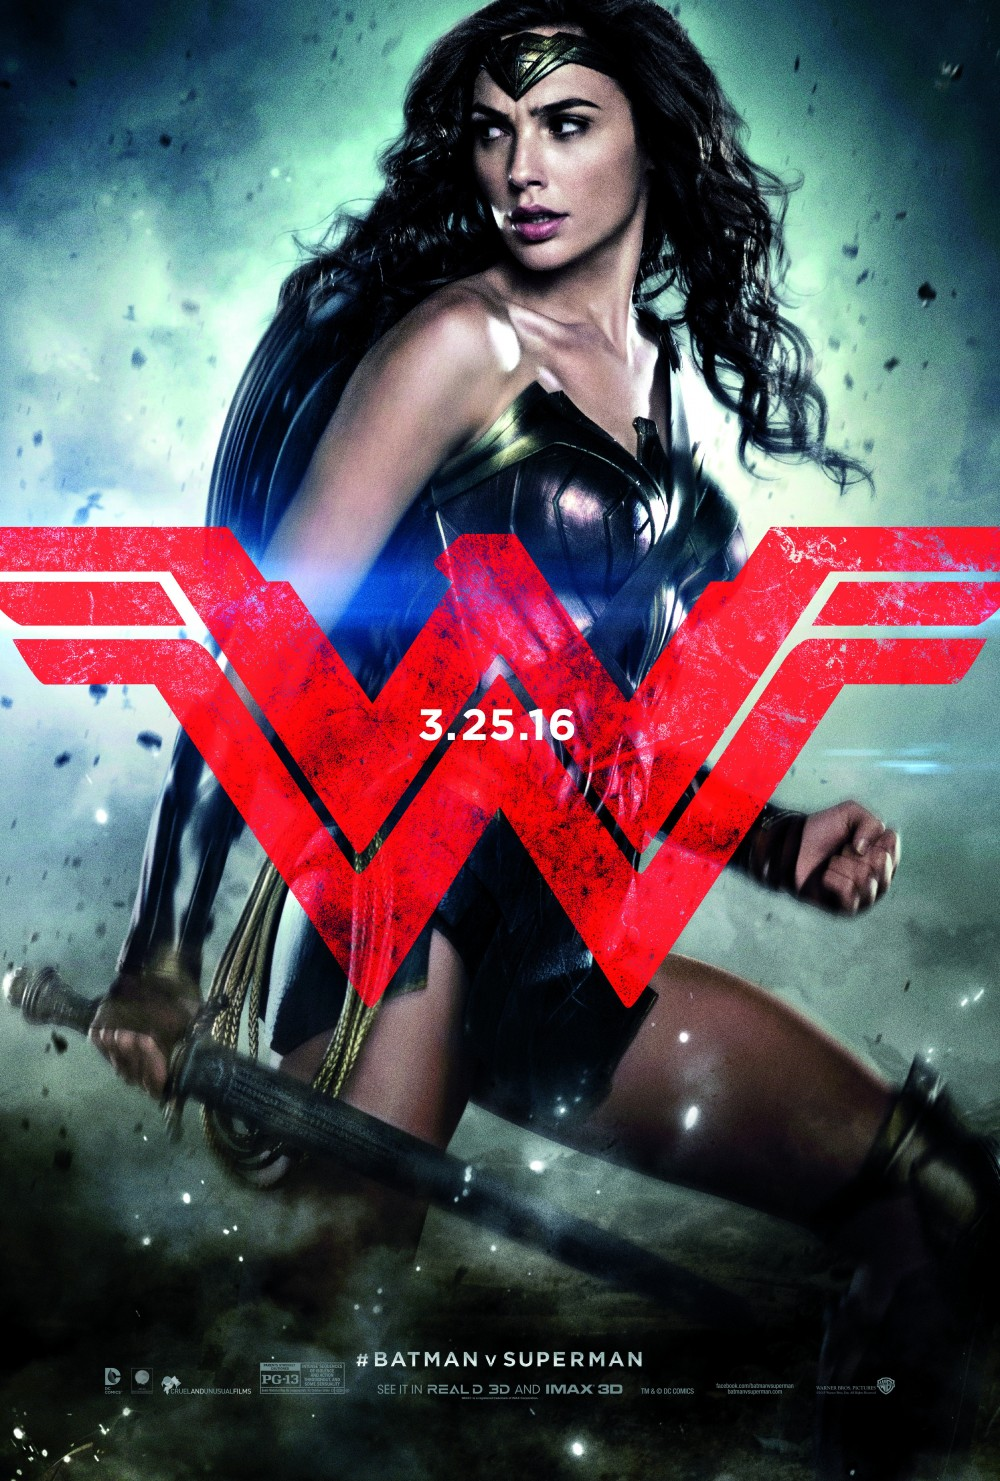 Wonder Woman will take place during WWI!